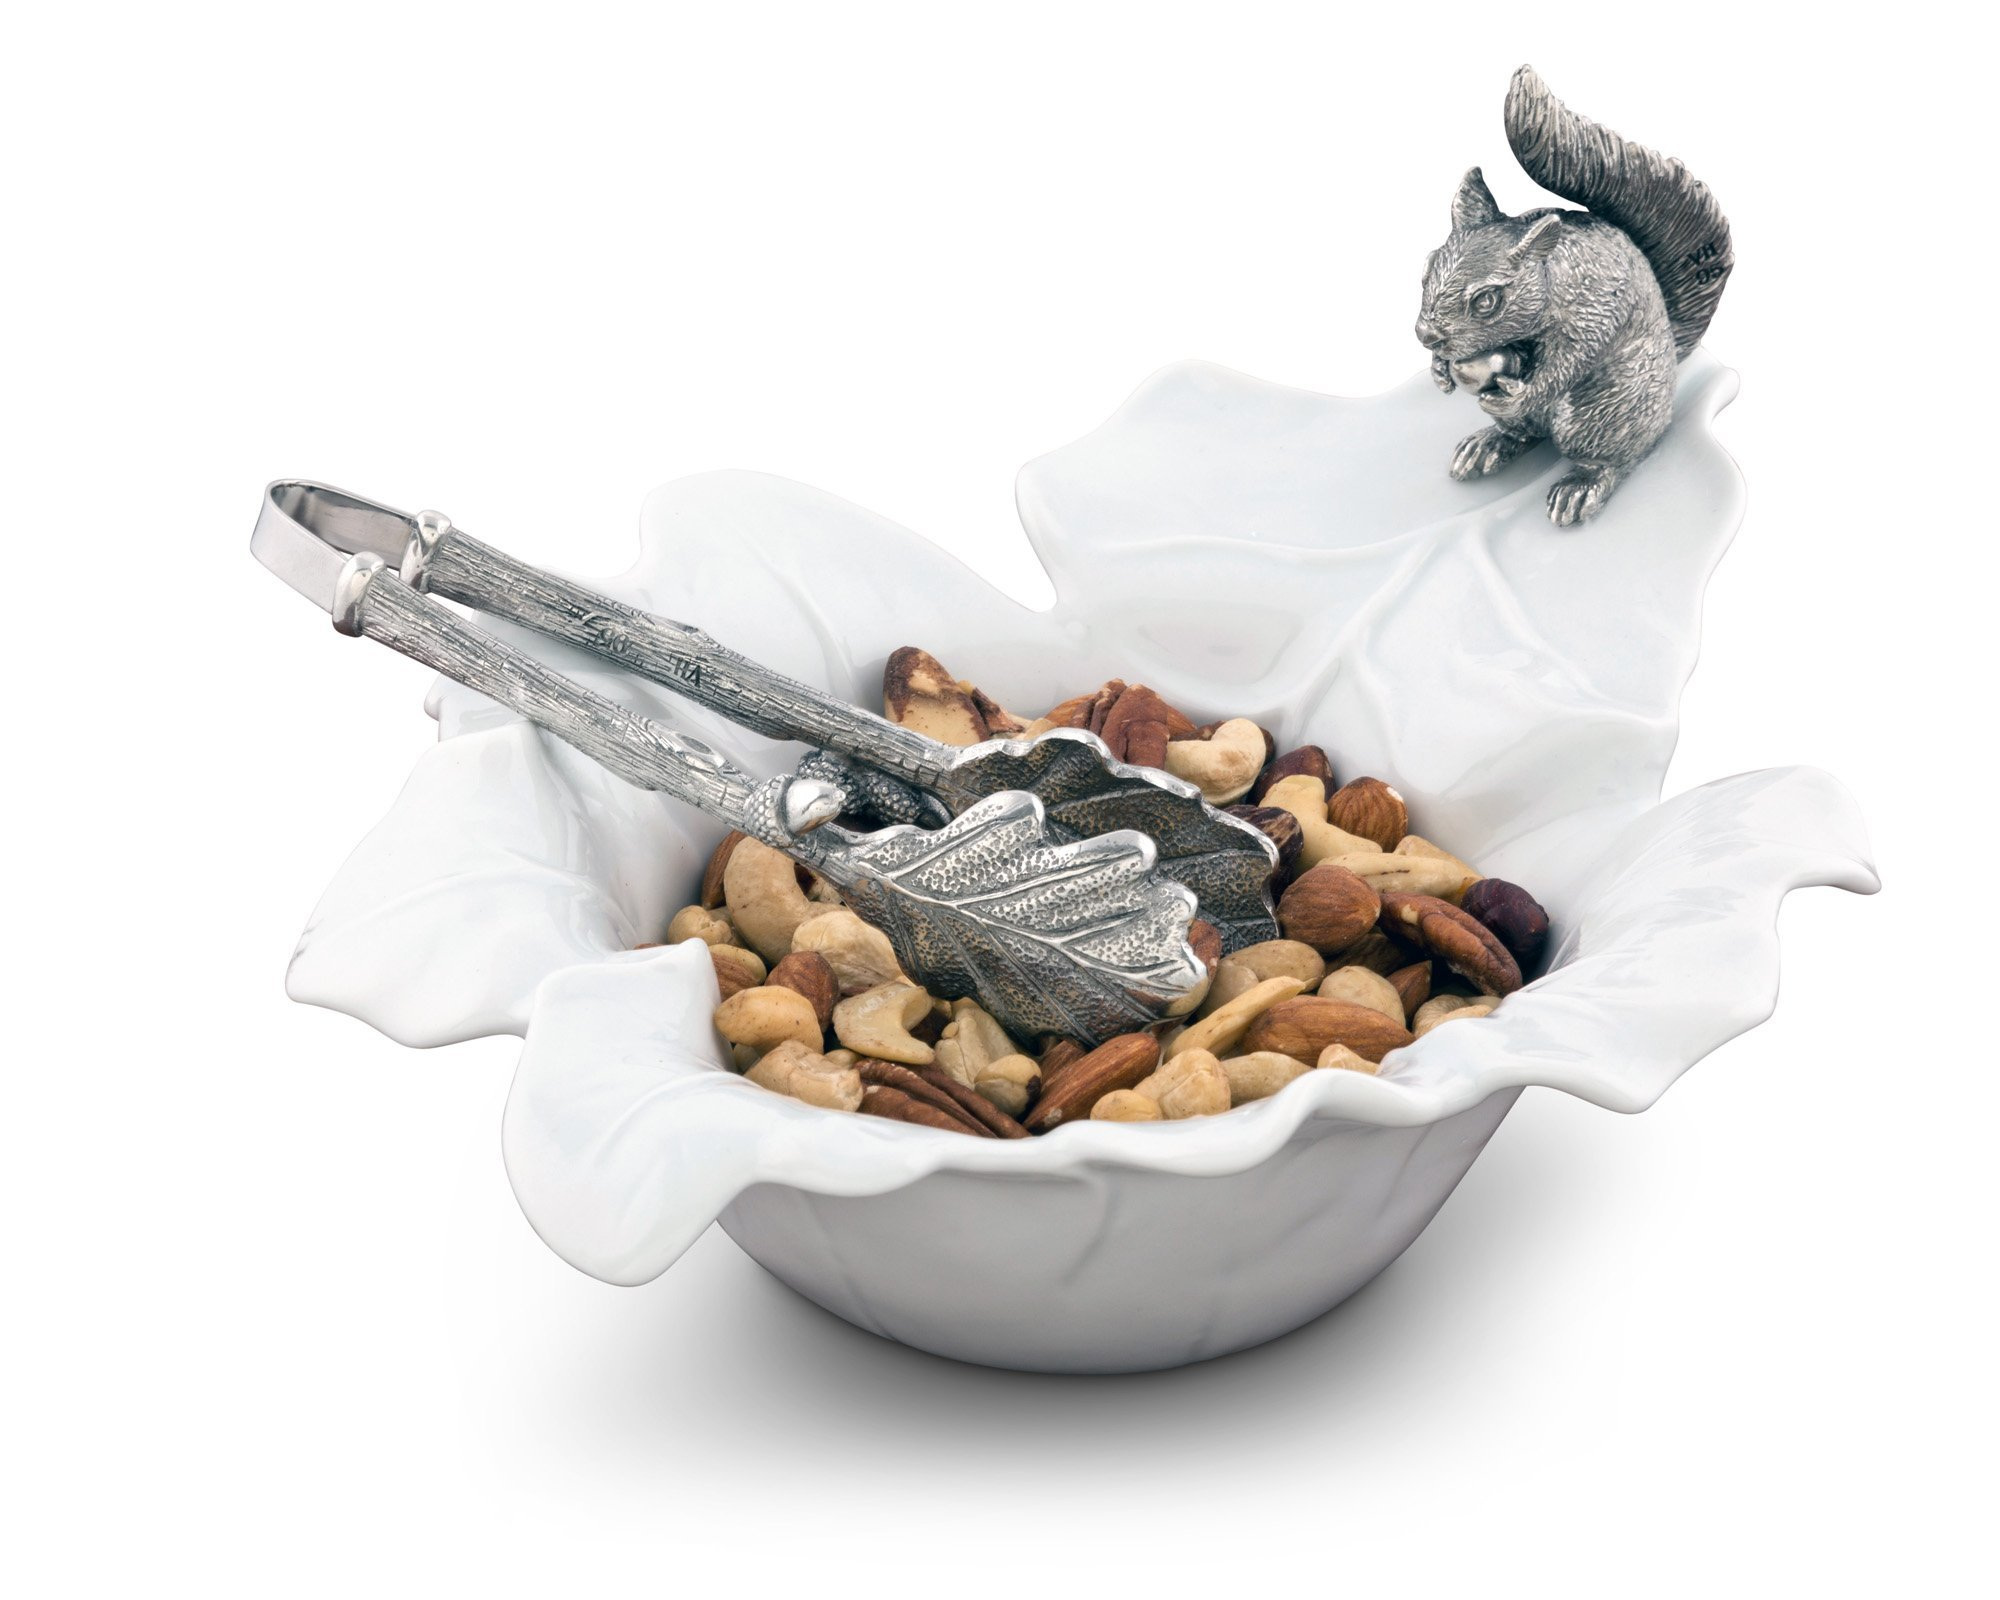 Vagabond House Fine Porcelain Leaf Bowl with Pewter Squirrel 10'' x 8'' 5.5'' Tall